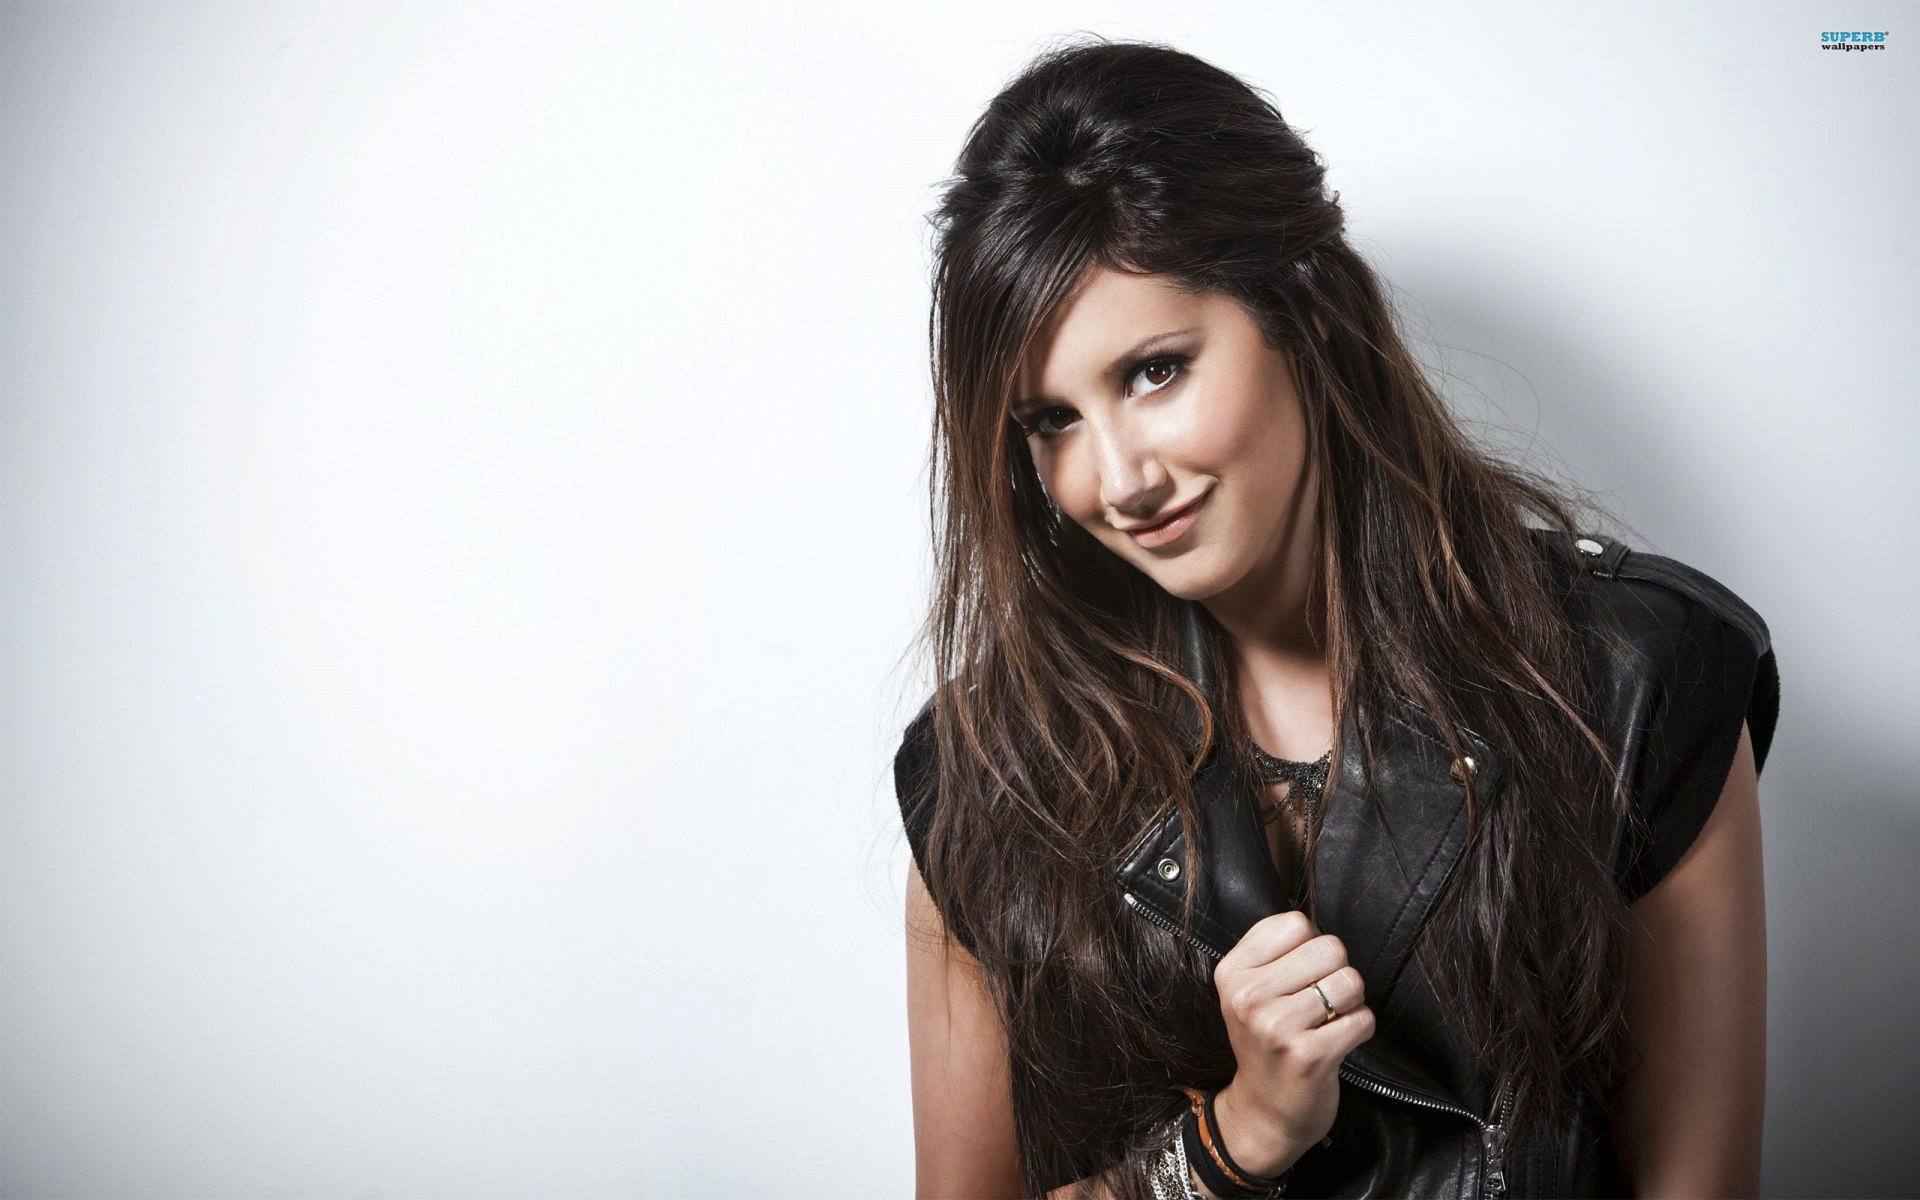 Cool Ashley Tisdale Wallpaper